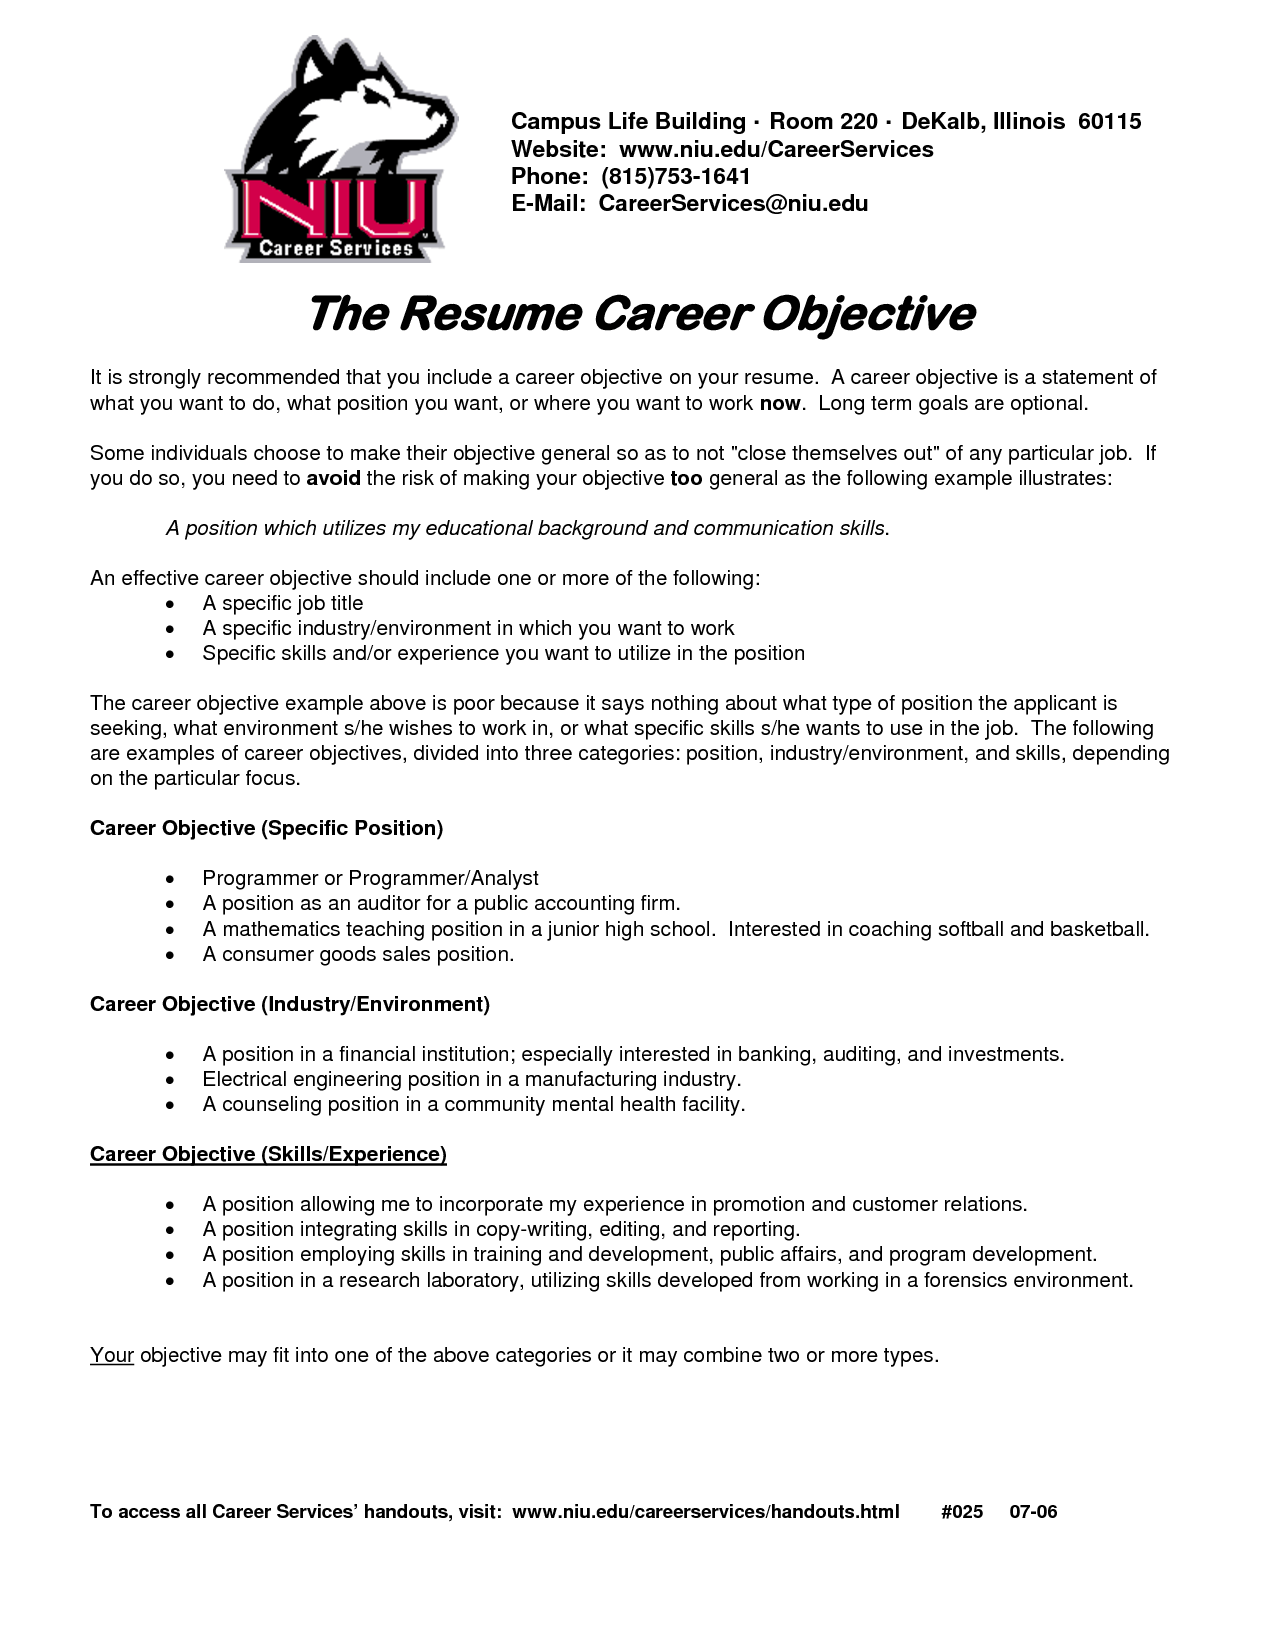 What Is A Good Objective To Write On A Resume 2016 Resume Objective Example Samplebusinessresume